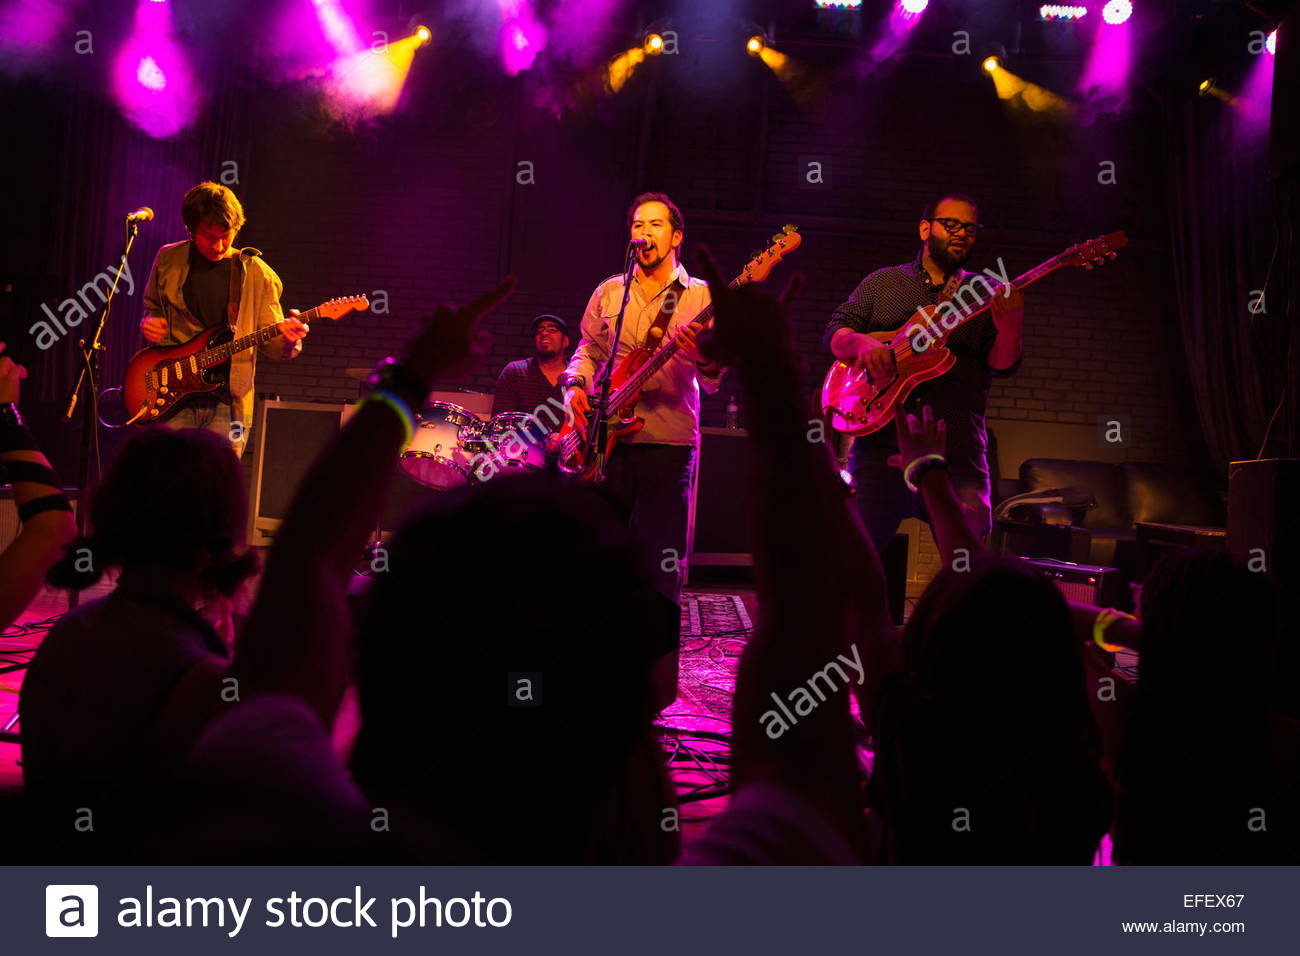 Musical performers on stage at music concert - Stock Image